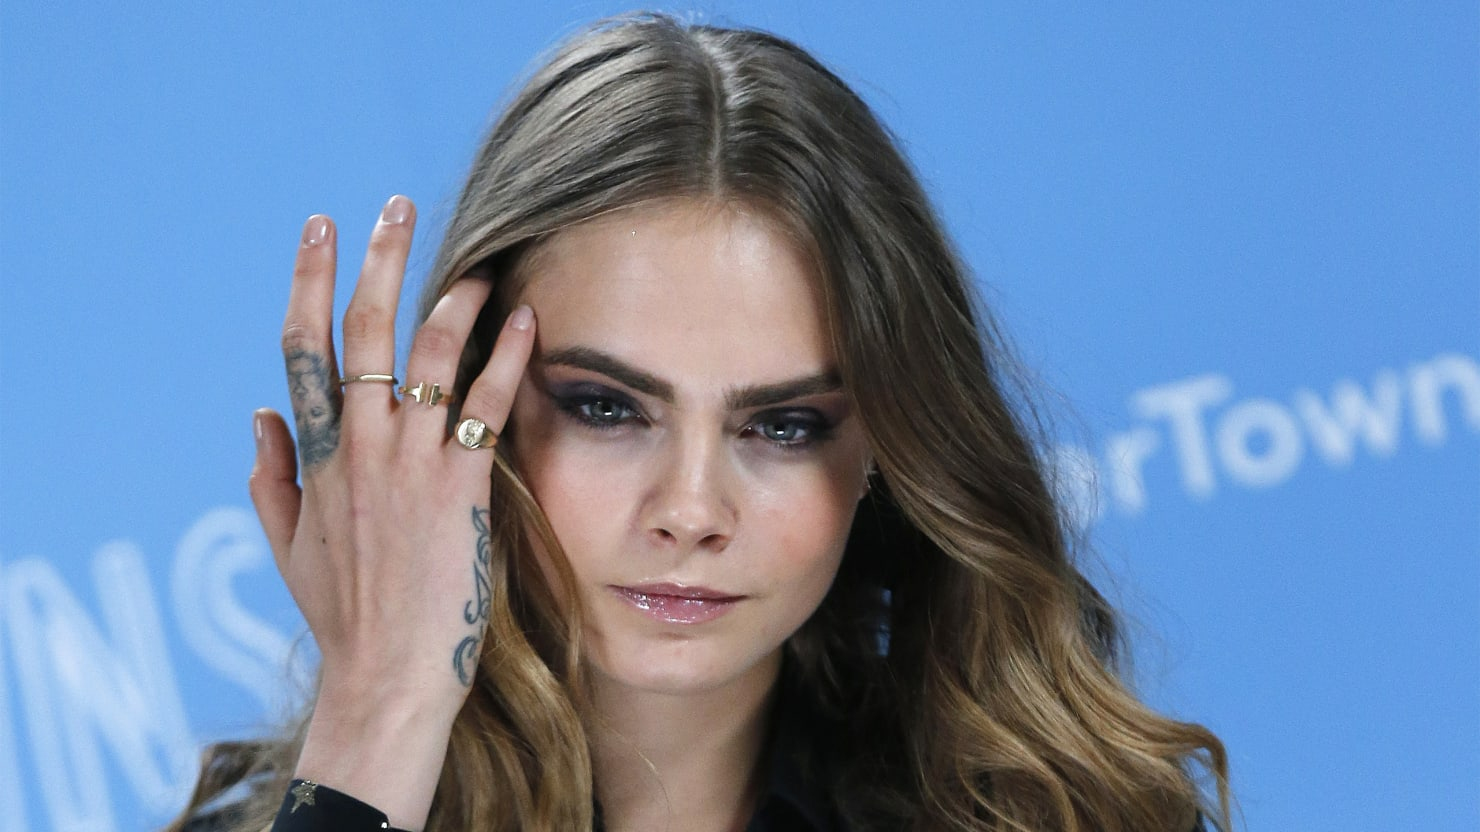 Can Cara Delevingne Act?